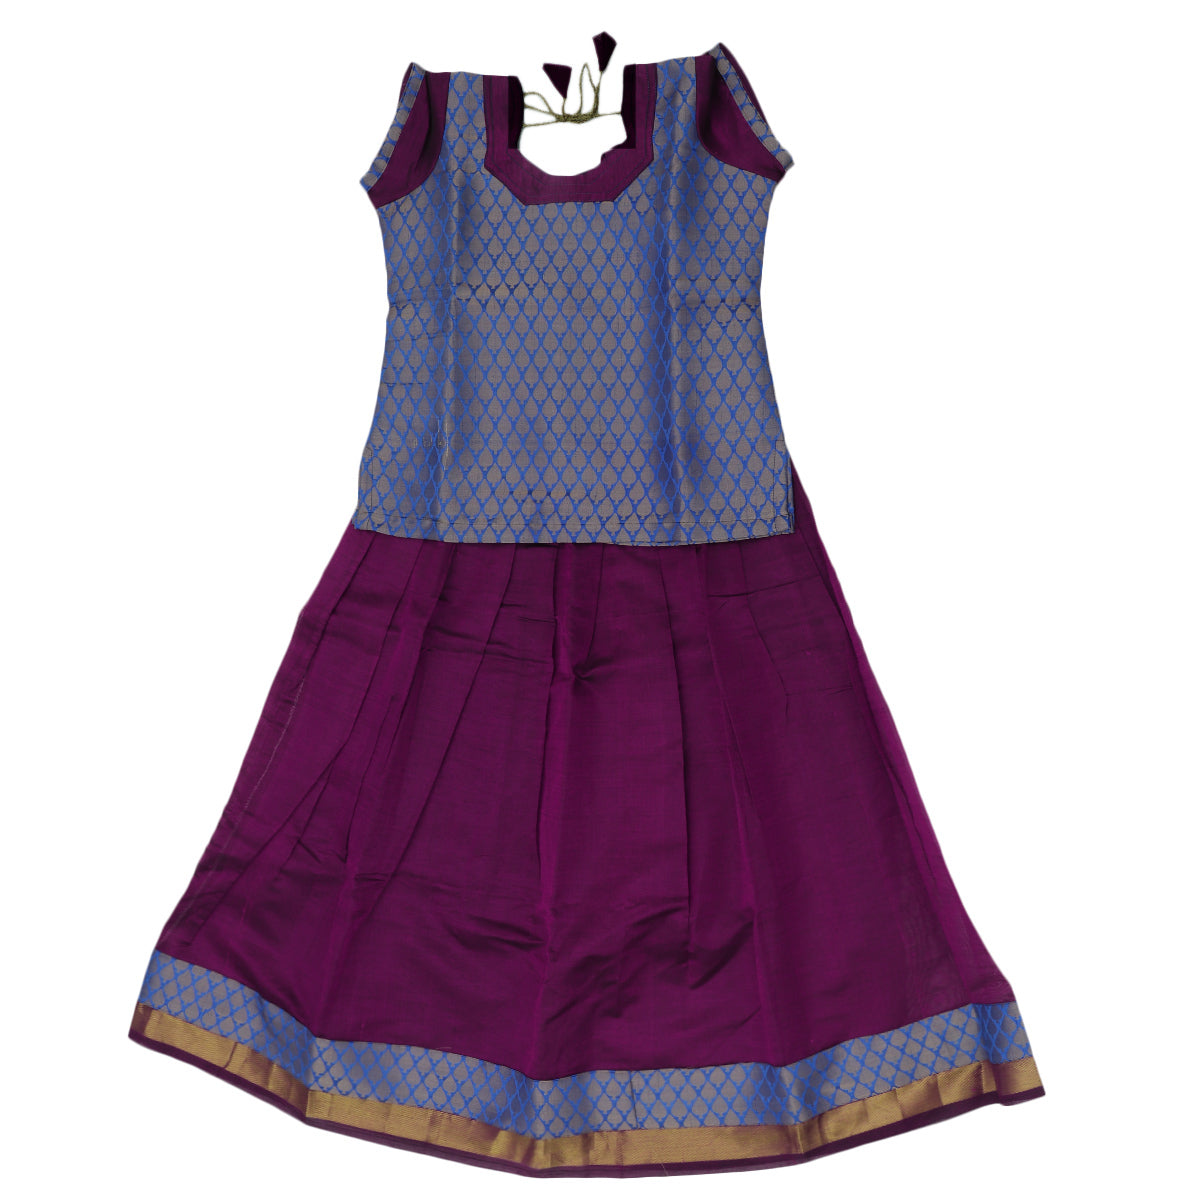 Paavadai Sattai - Blue brocade blouse and Purple with Simple Zari border ( 8 years)